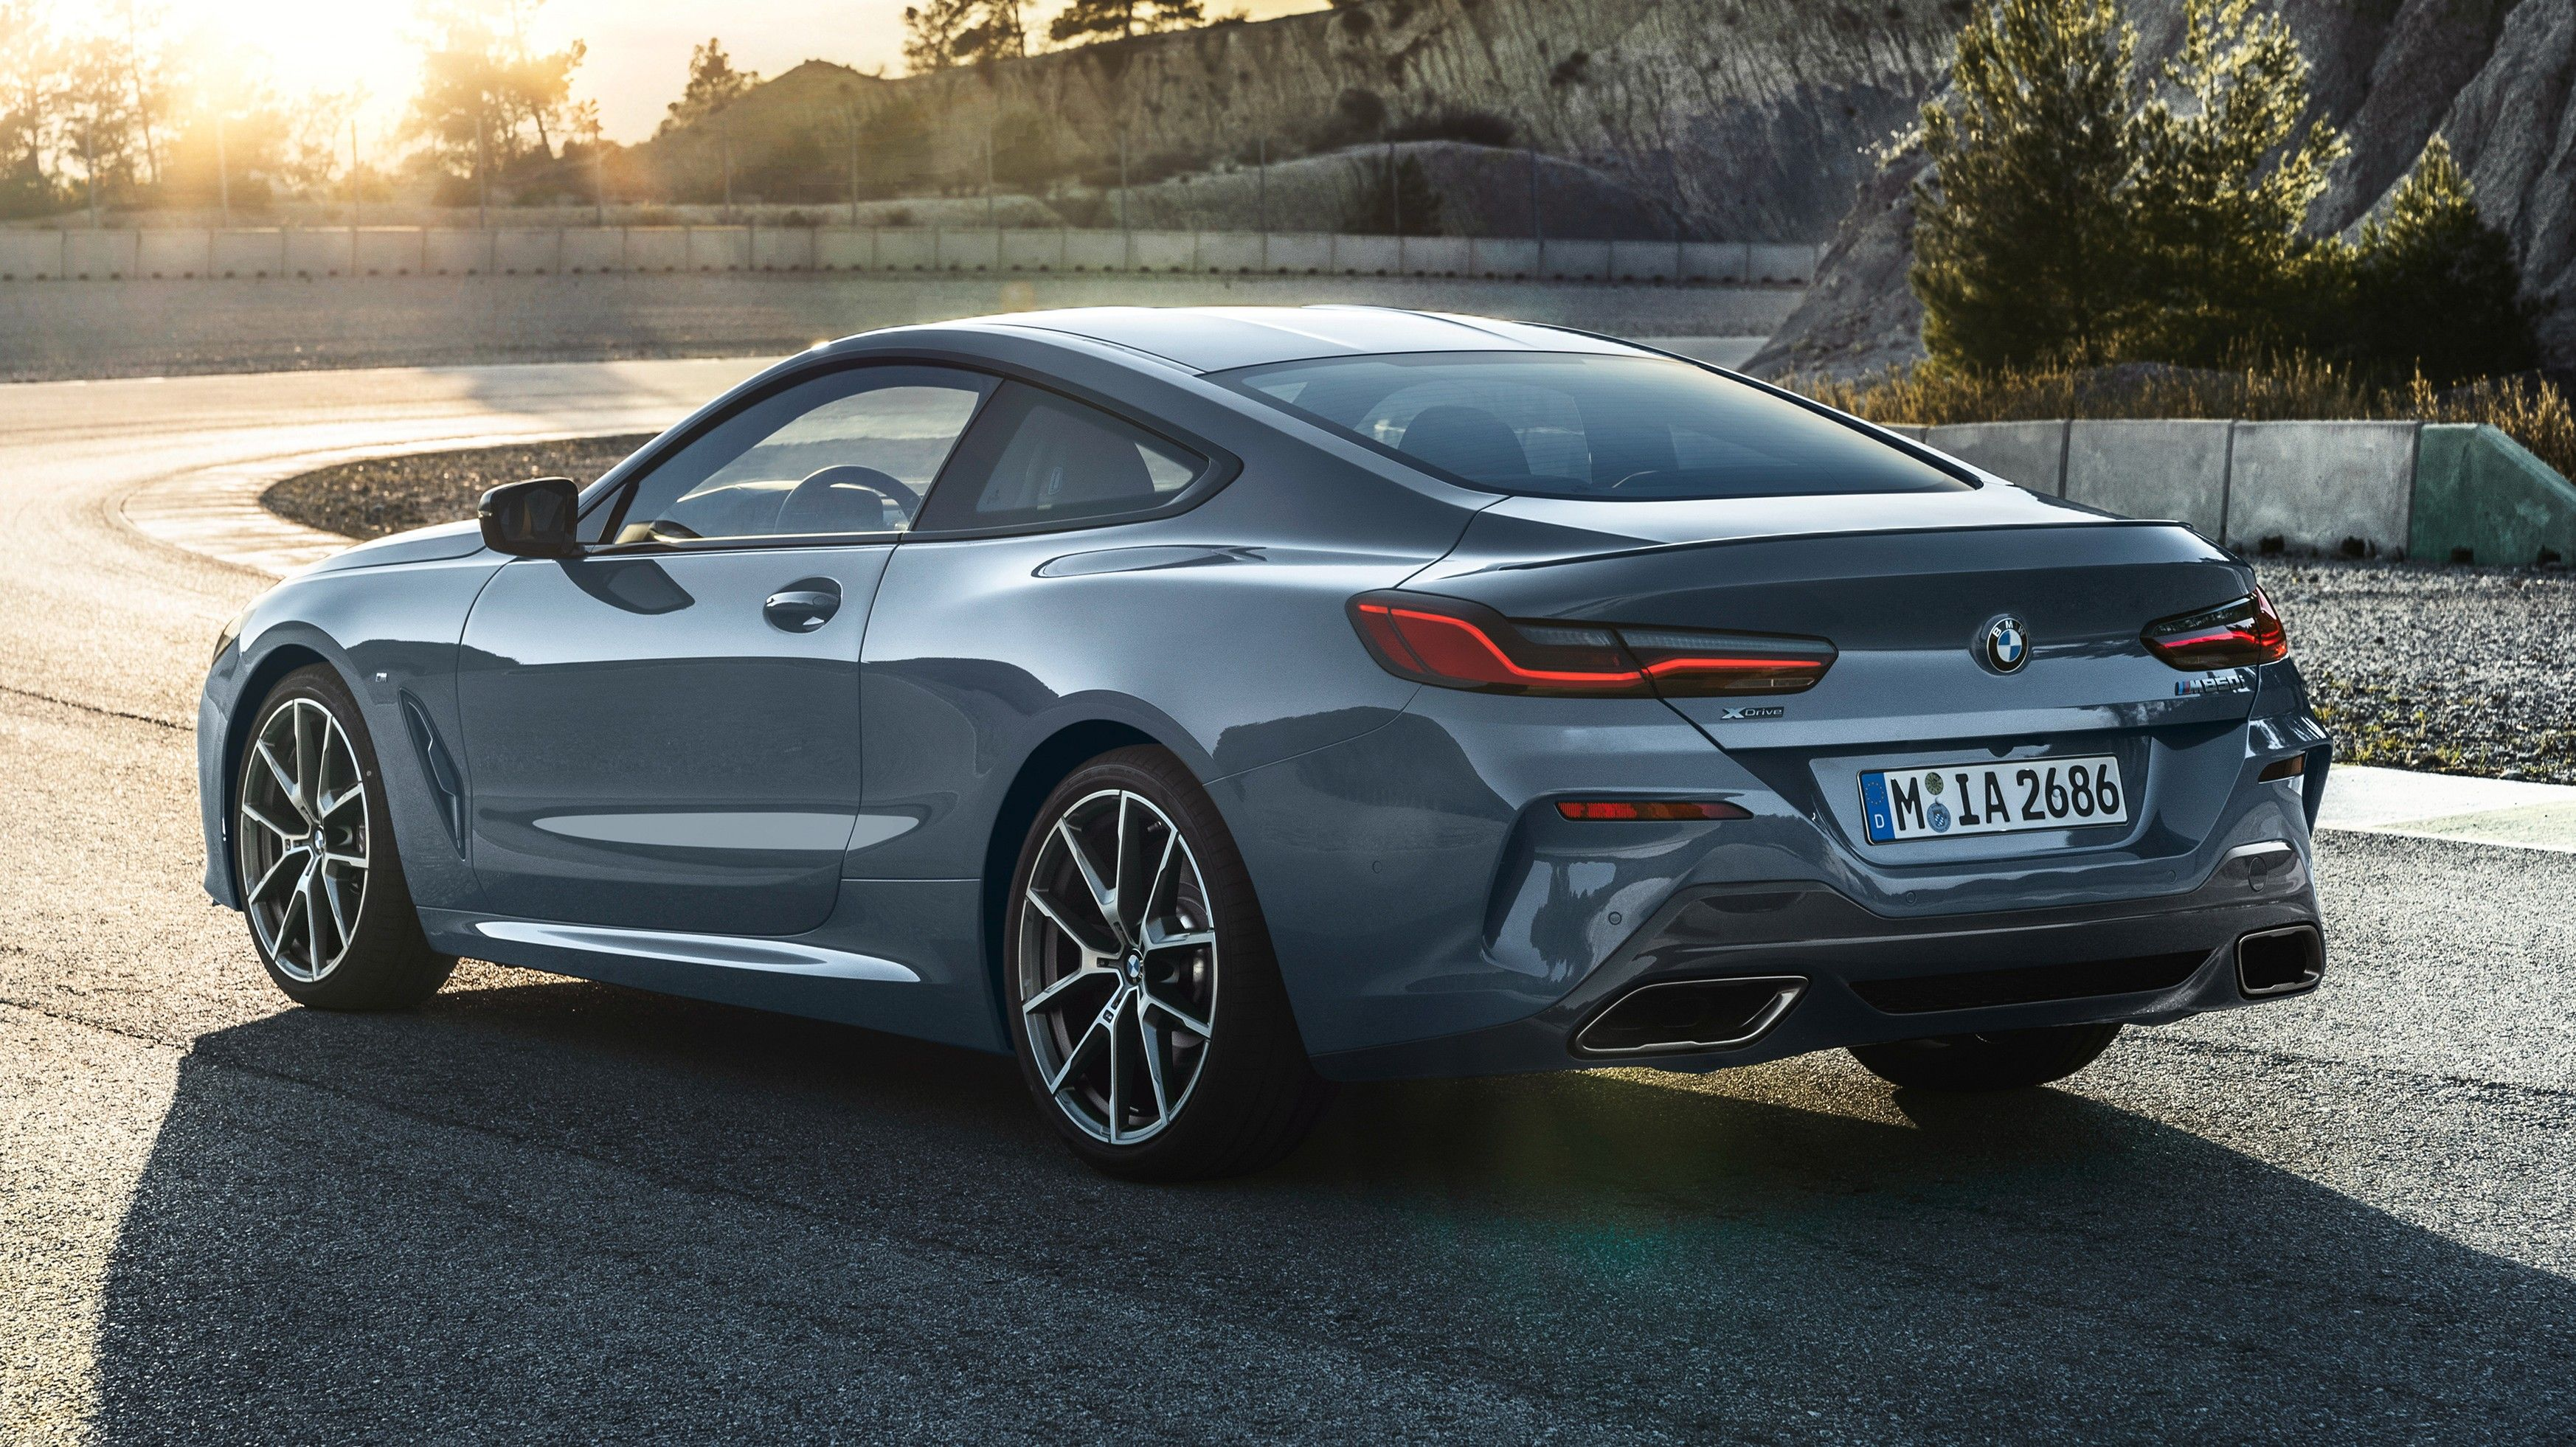 2020 BMW M850i Rear Three-quarter View